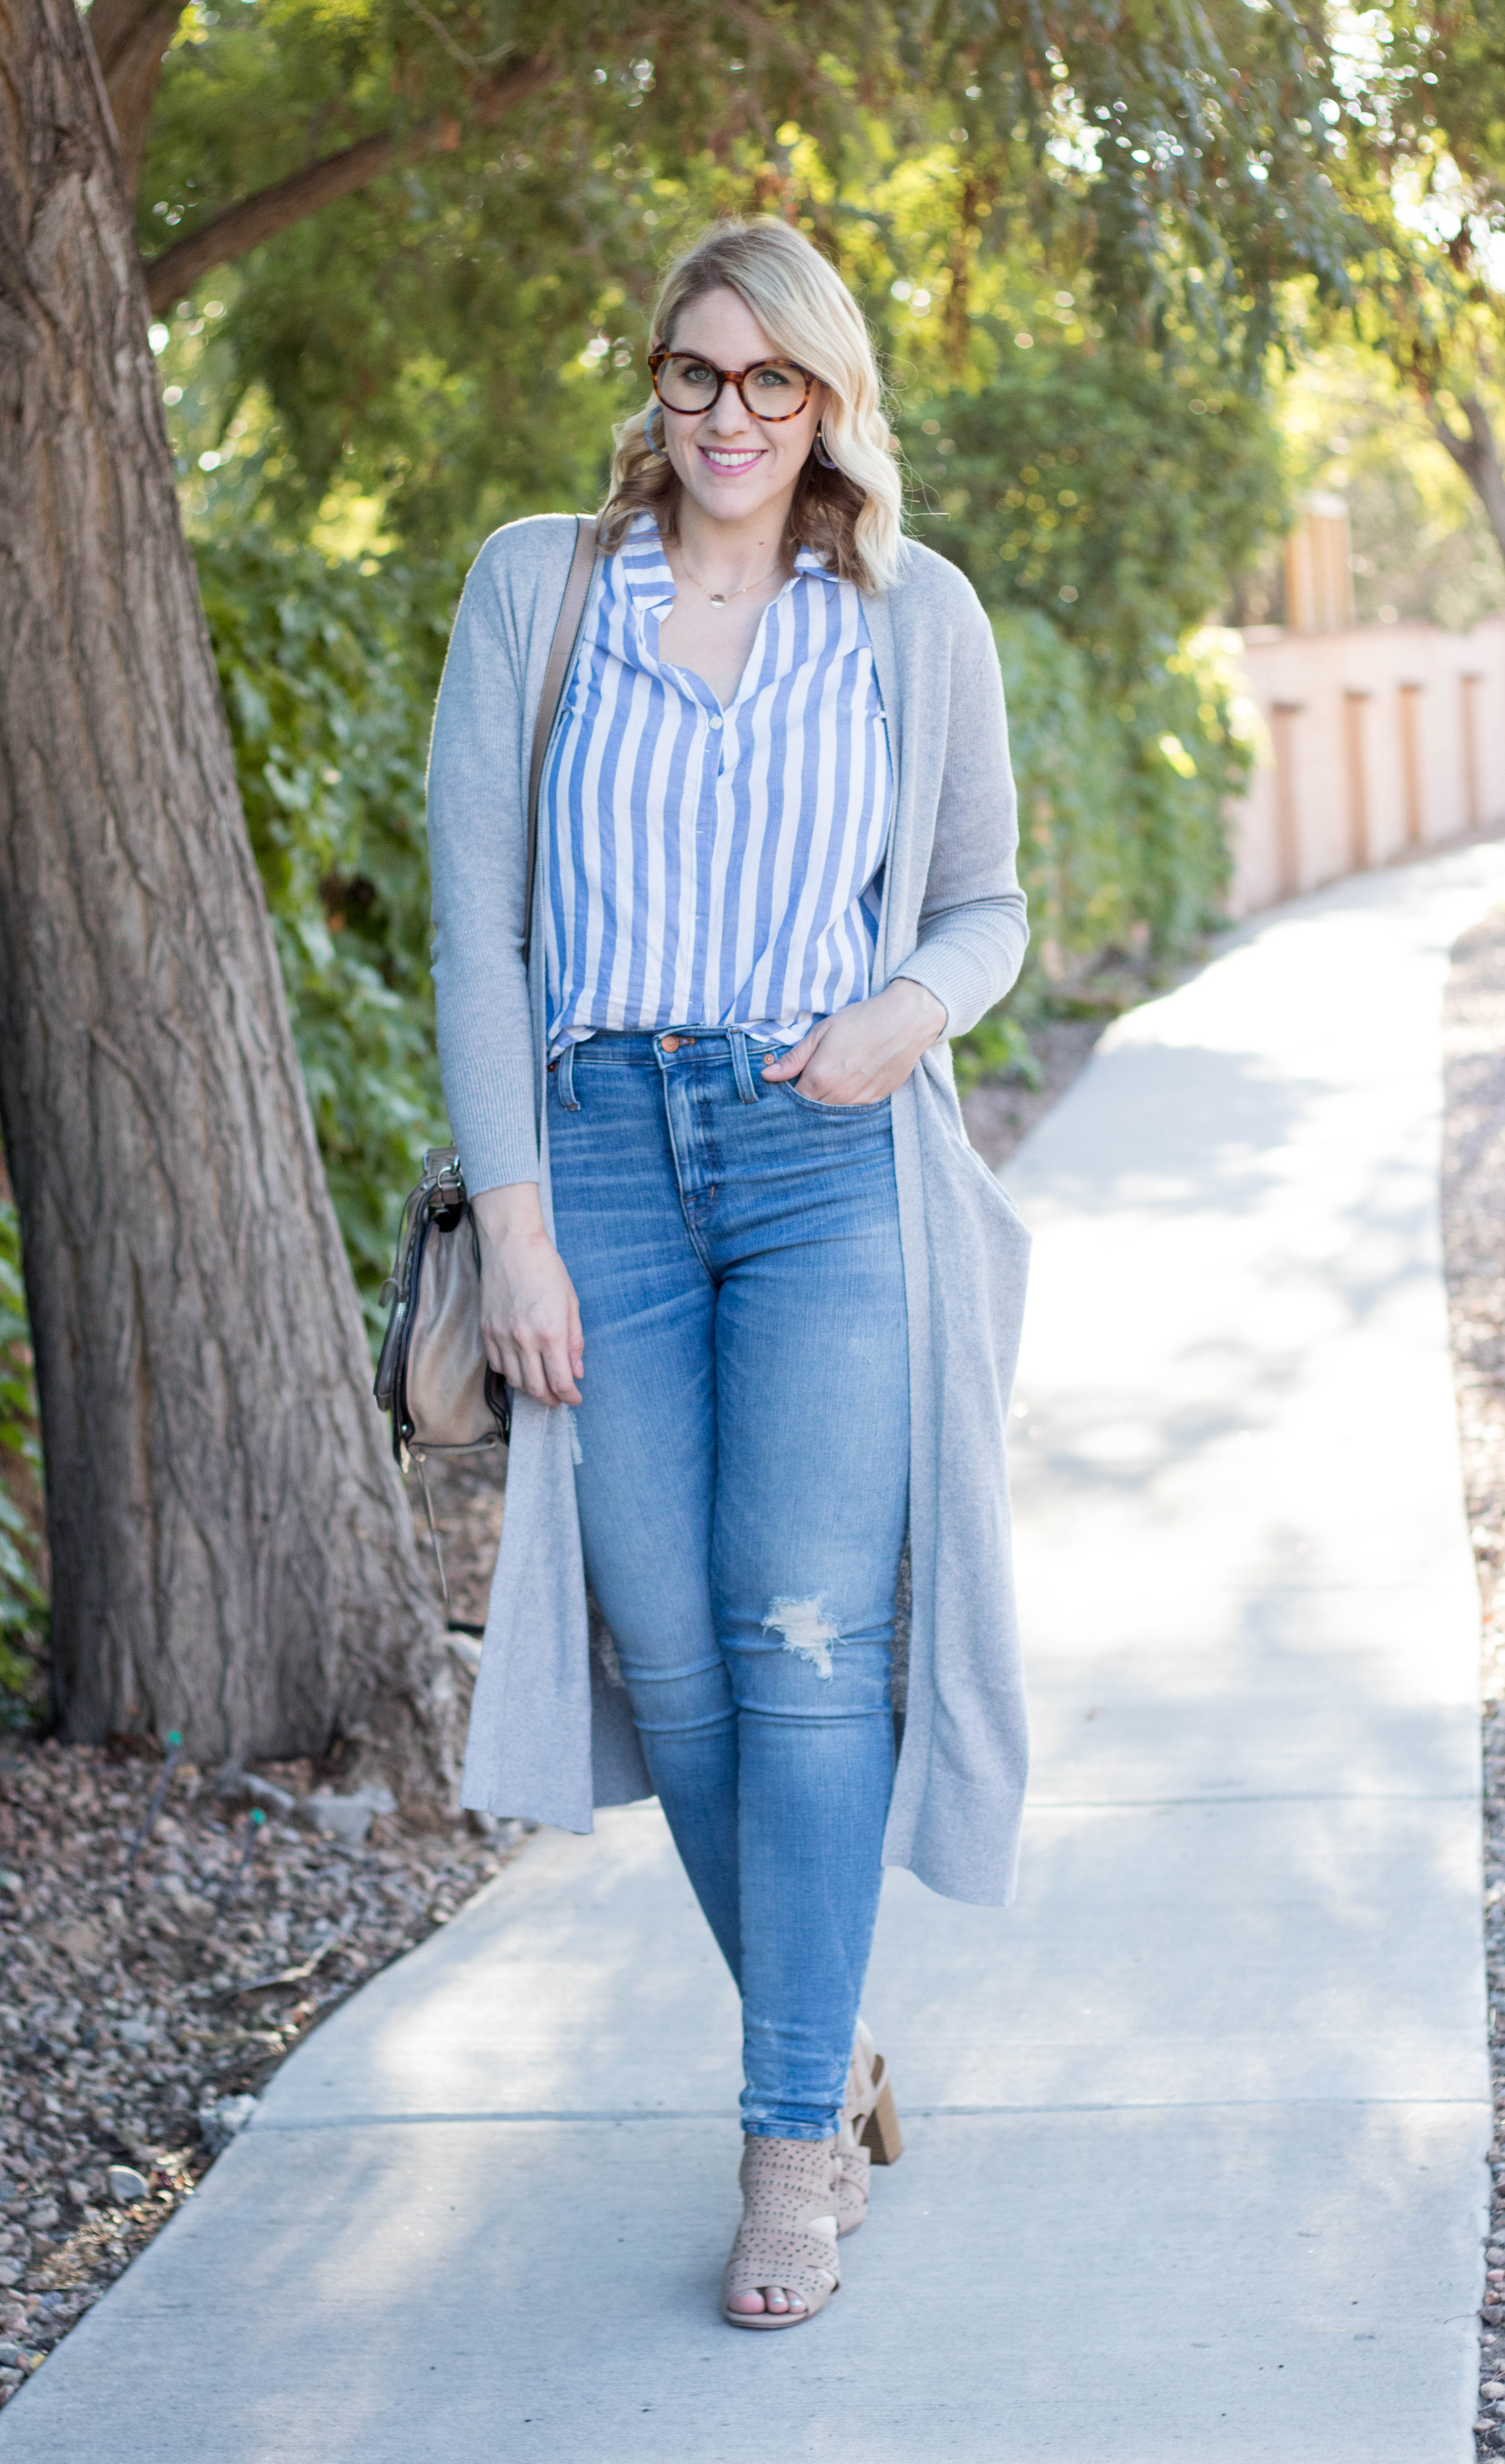 how to wear stripes for fall #jcrew #everydaymadewell #fallfashion